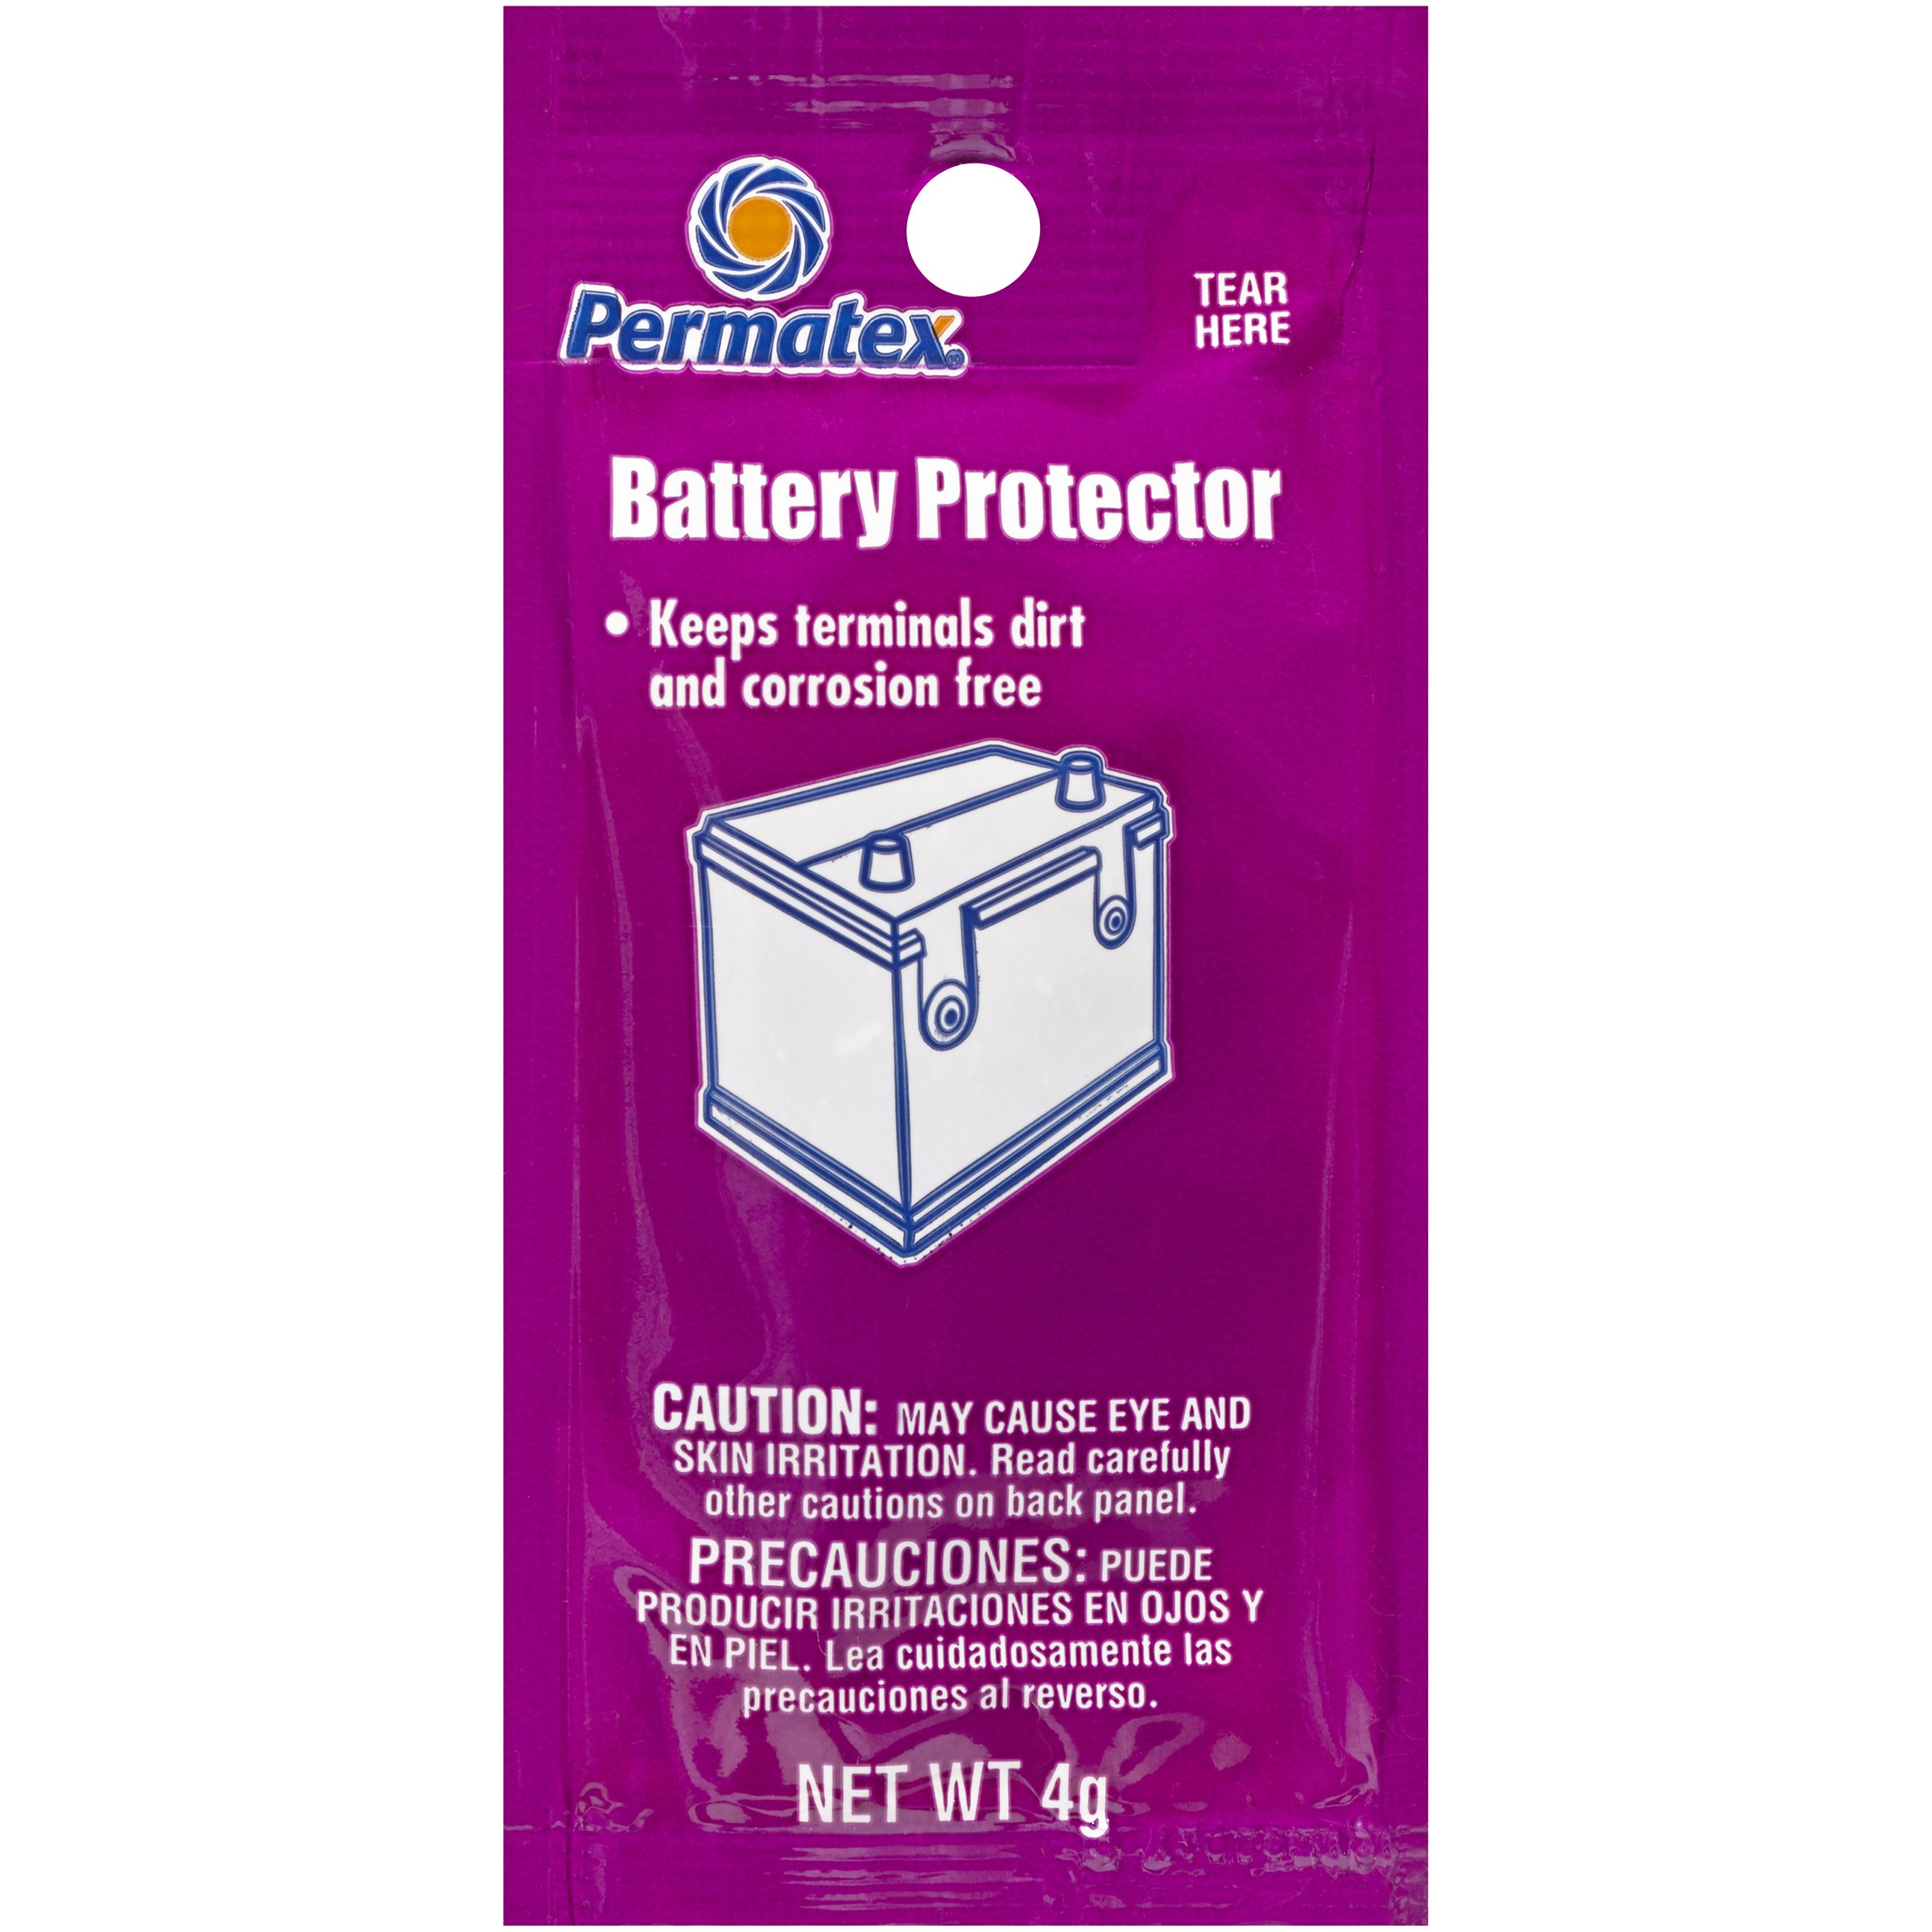 Permatex 09976-480pk Counterman's Choice Battery Protector Grease, 4 g Pouch (Pack of 480)